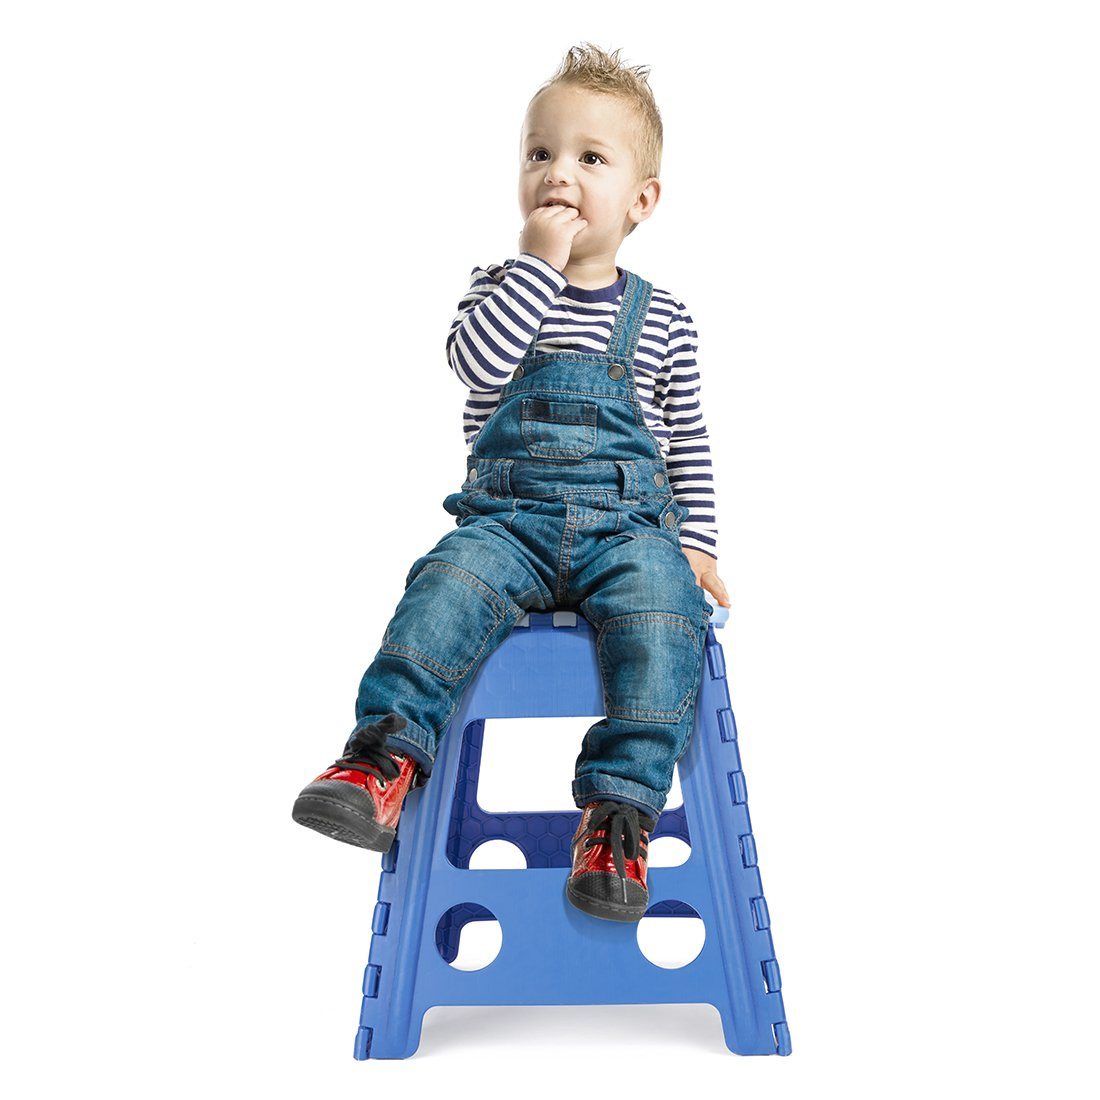 Acko 16 Inch Super Strong Folding Step Stool for Adults and Kids Kitchen Garden Usage Blue by Acko (Image #5)